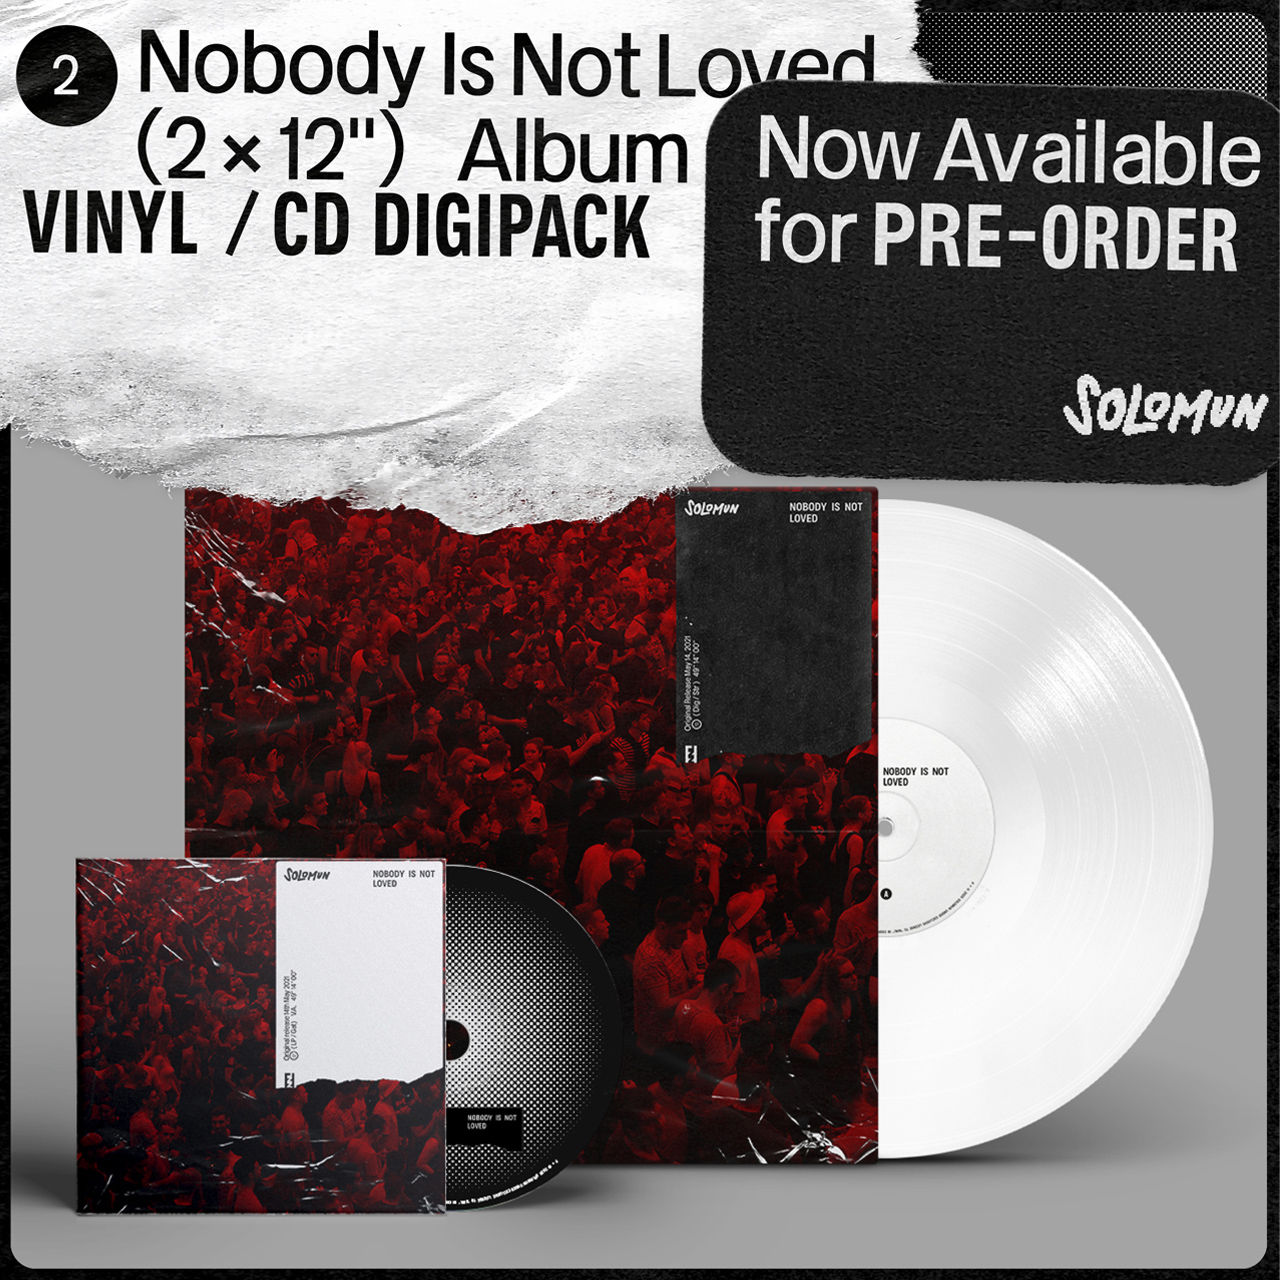 Solomun Nobody Is Not Loved (CD Digipack) OUT MAY 28TH 2021 CD PREORDER